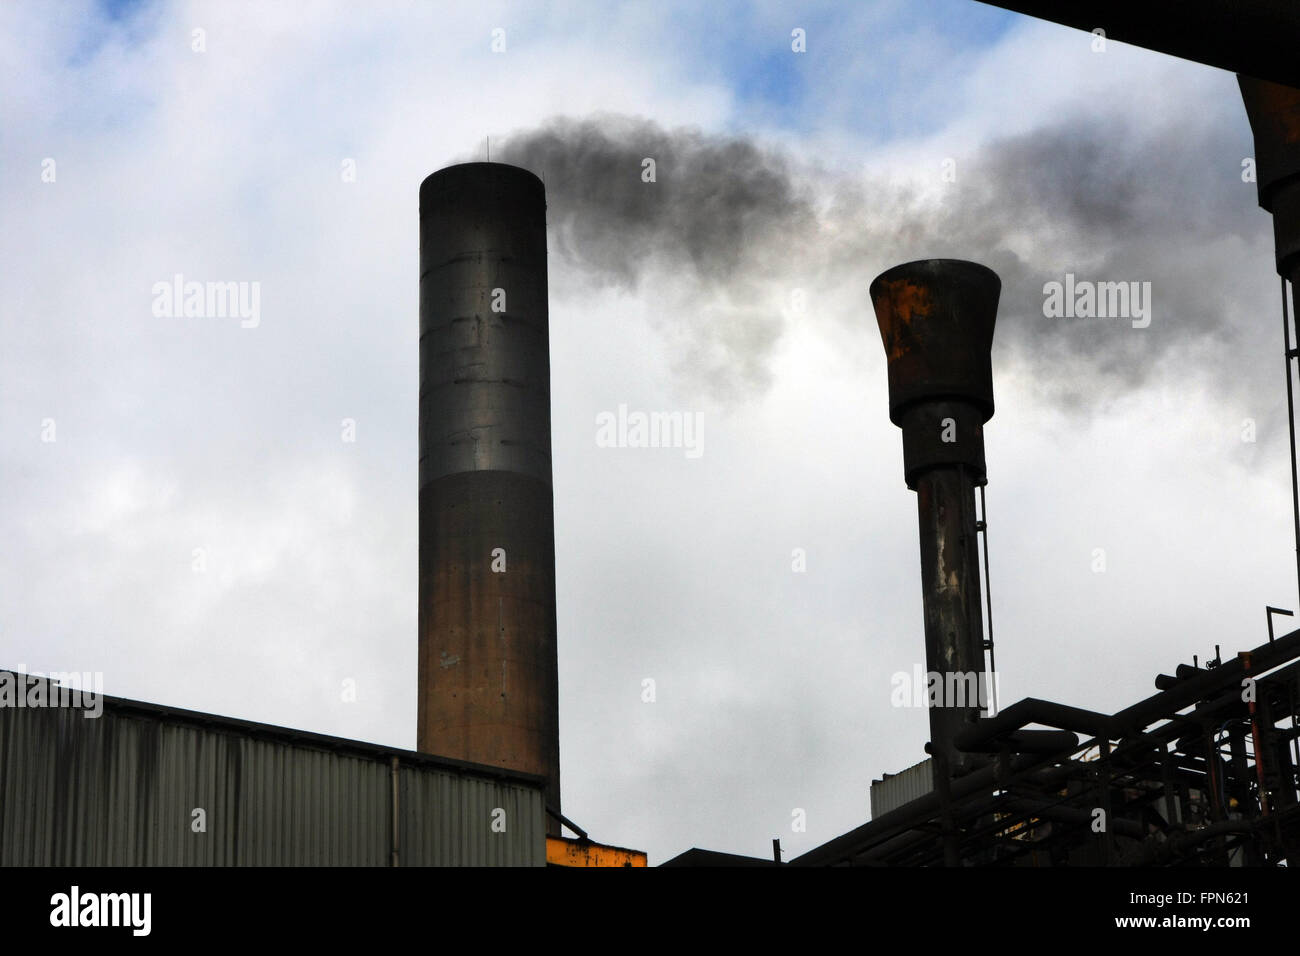 Smoke and emissions from factory chimneys. - Stock Image